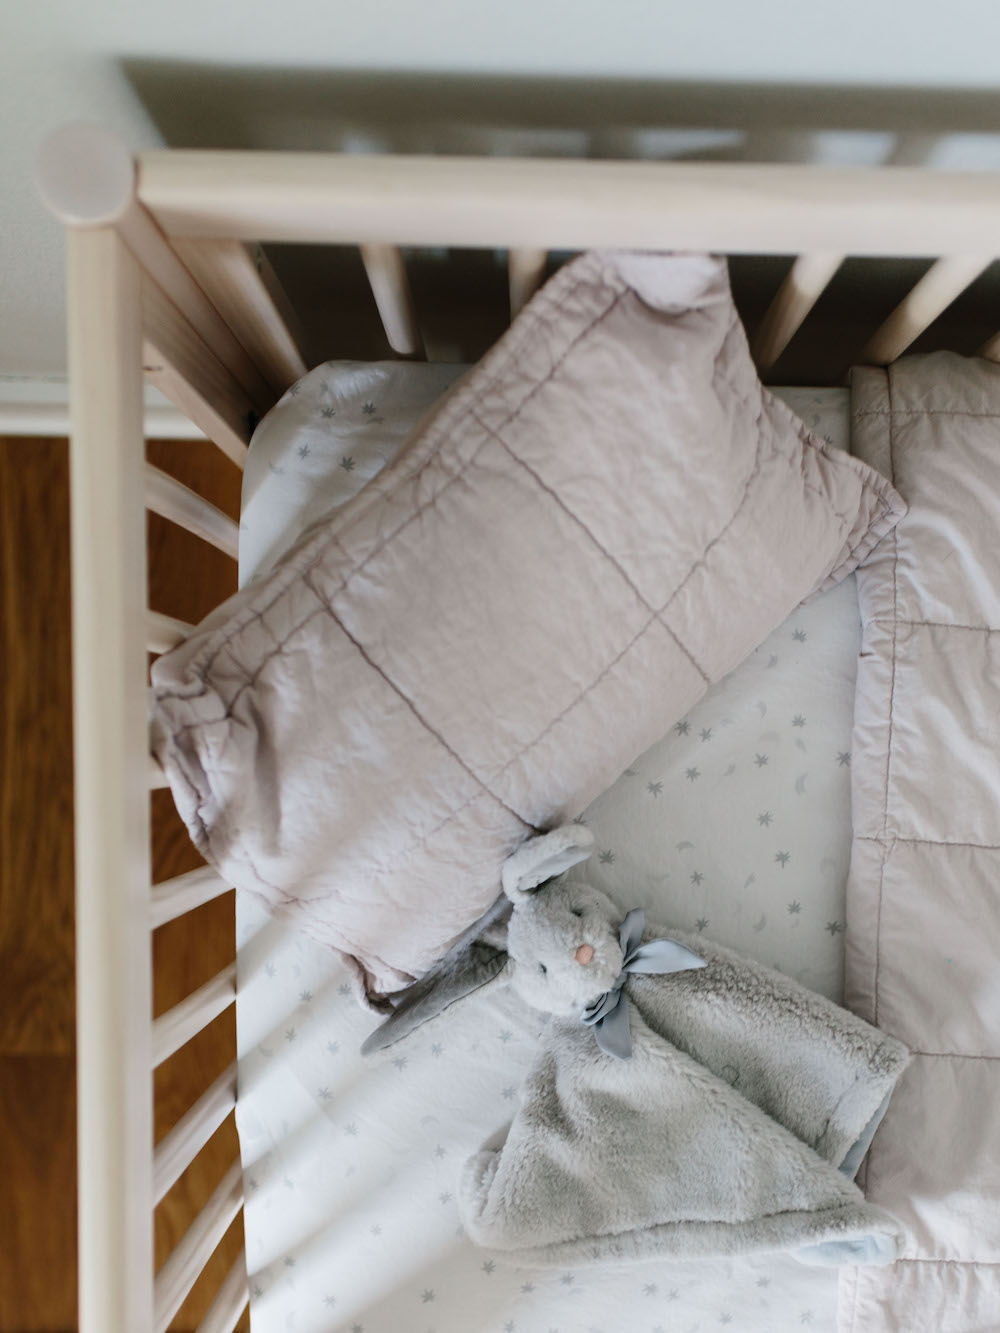 imagine everything that you love about parachutes original bedding collection long staple egyptian cottons stone washed for that lived in soft texture - Parachute Bedding